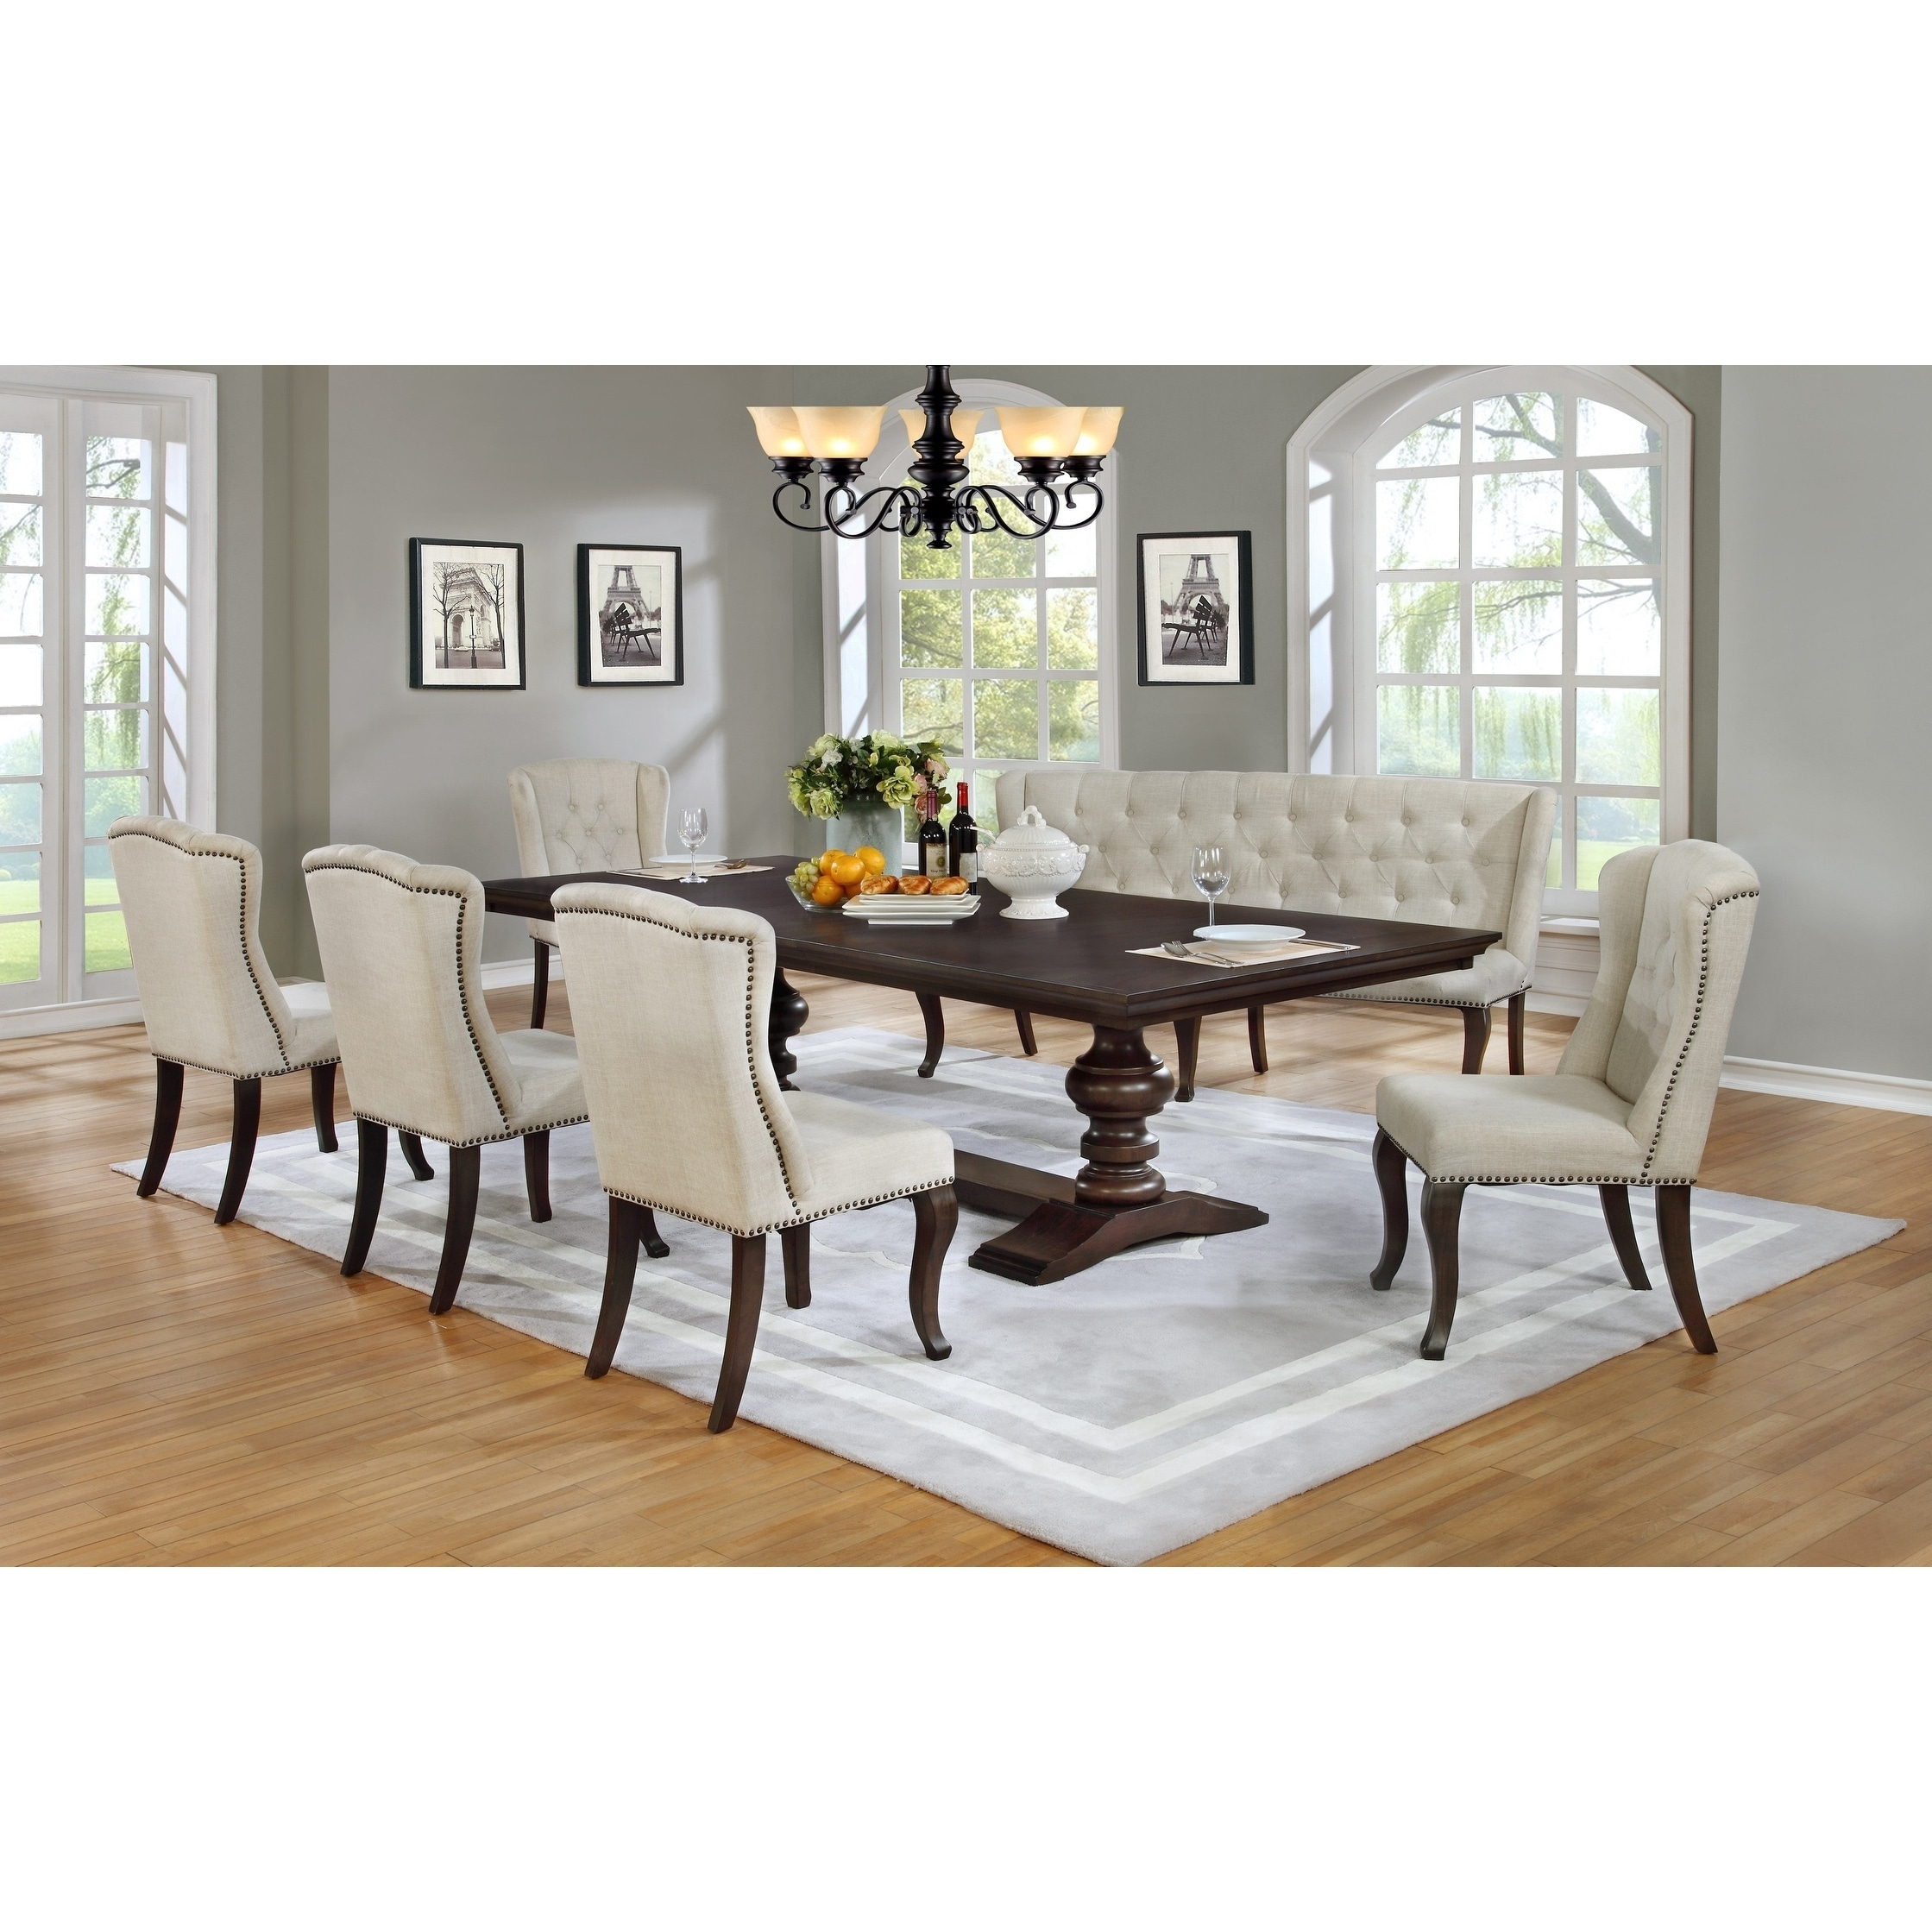 Shop Best Quality Furniture Cappuccino Dining Set On Sale Overstock 17965206